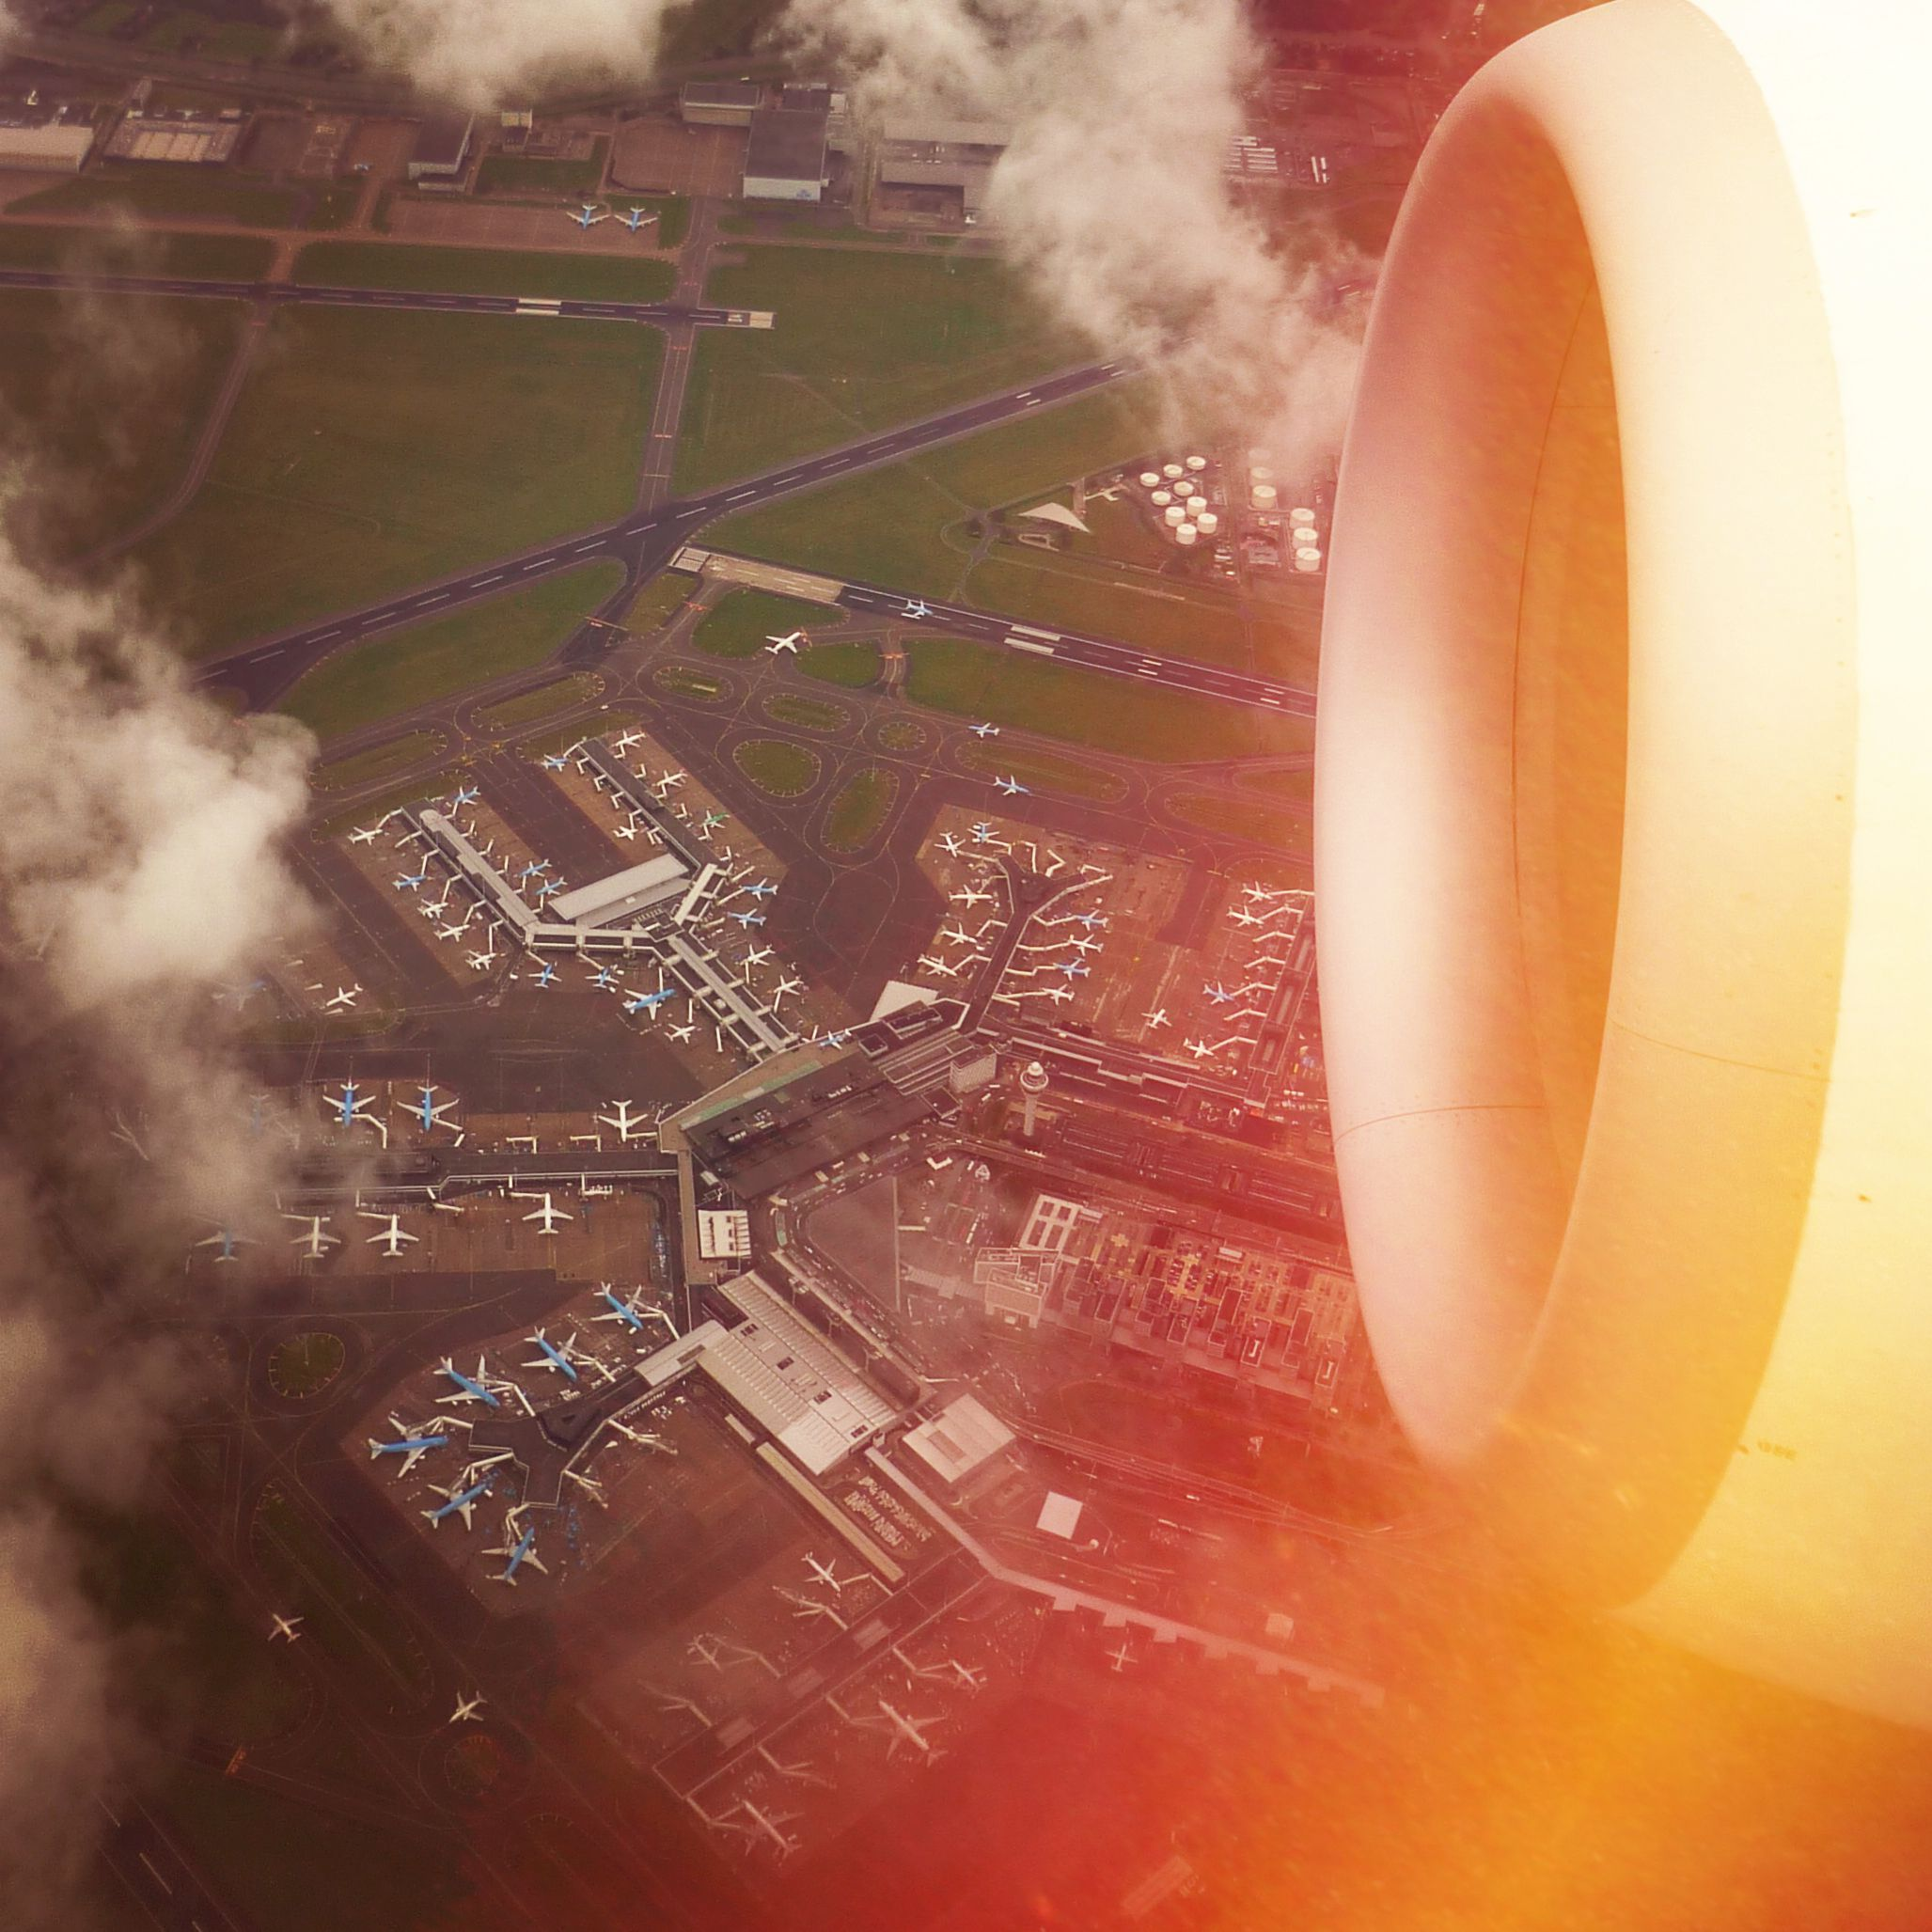 Travel the world ♥ Amsterdam Schiphol Airport seen from the air!